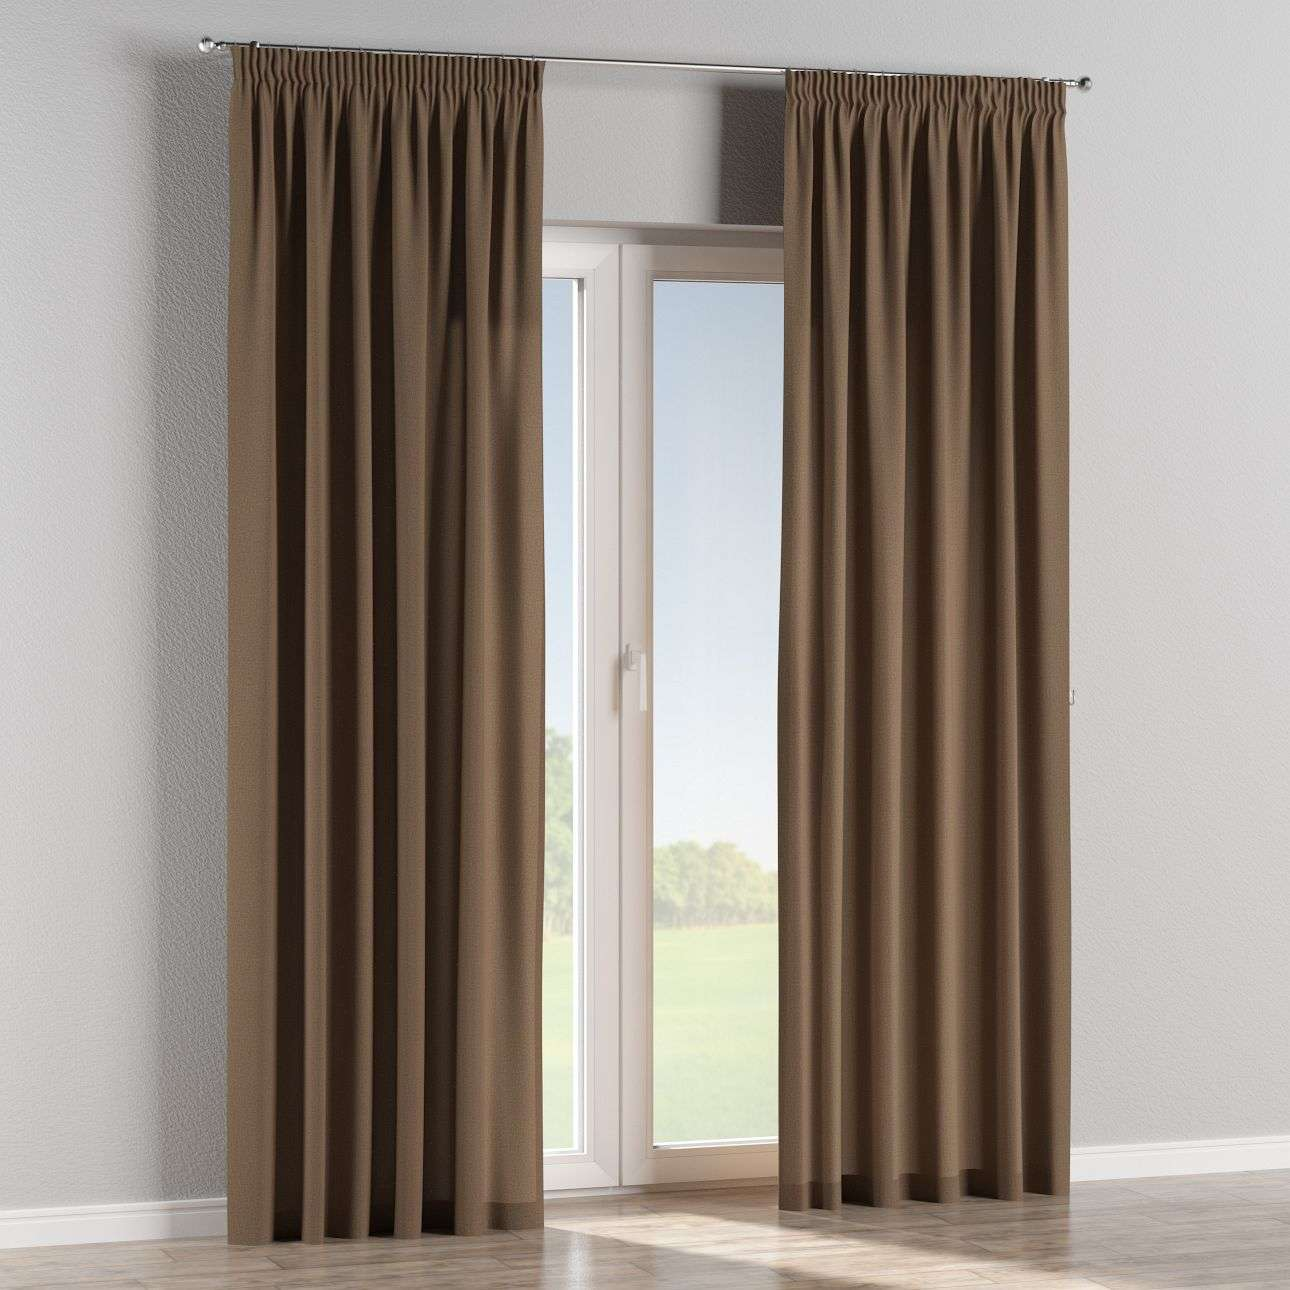 Pencil pleat curtains 130 x 260 cm (51 x 102 inch) in collection Edinburgh , fabric: 115-85